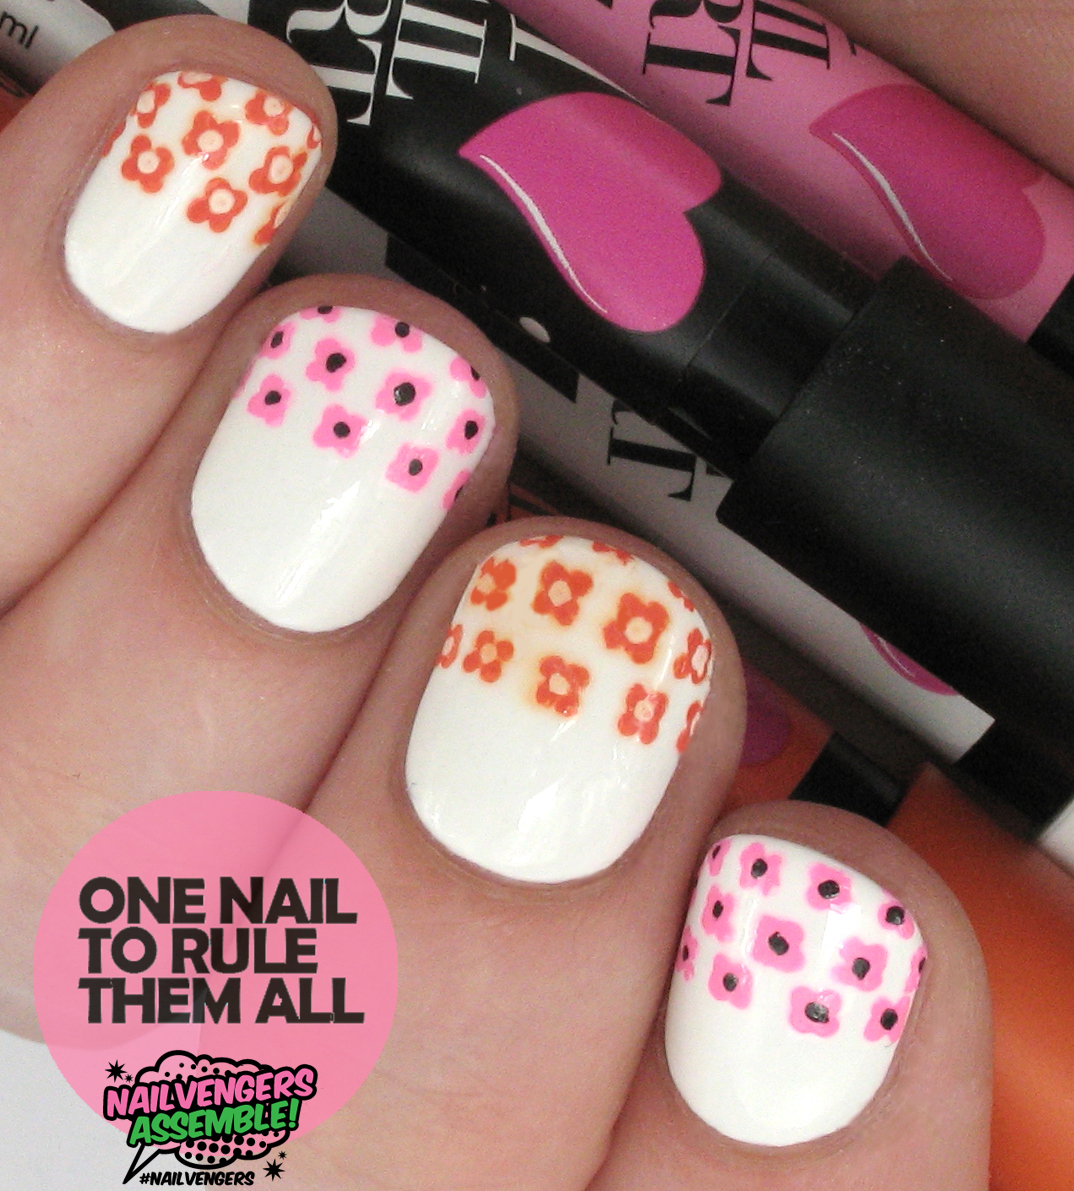 One Nail To Rule Them All Barry M Nail Art Pens Review: One Nail To Rule Them All: Nailvengers Assemble: Untried